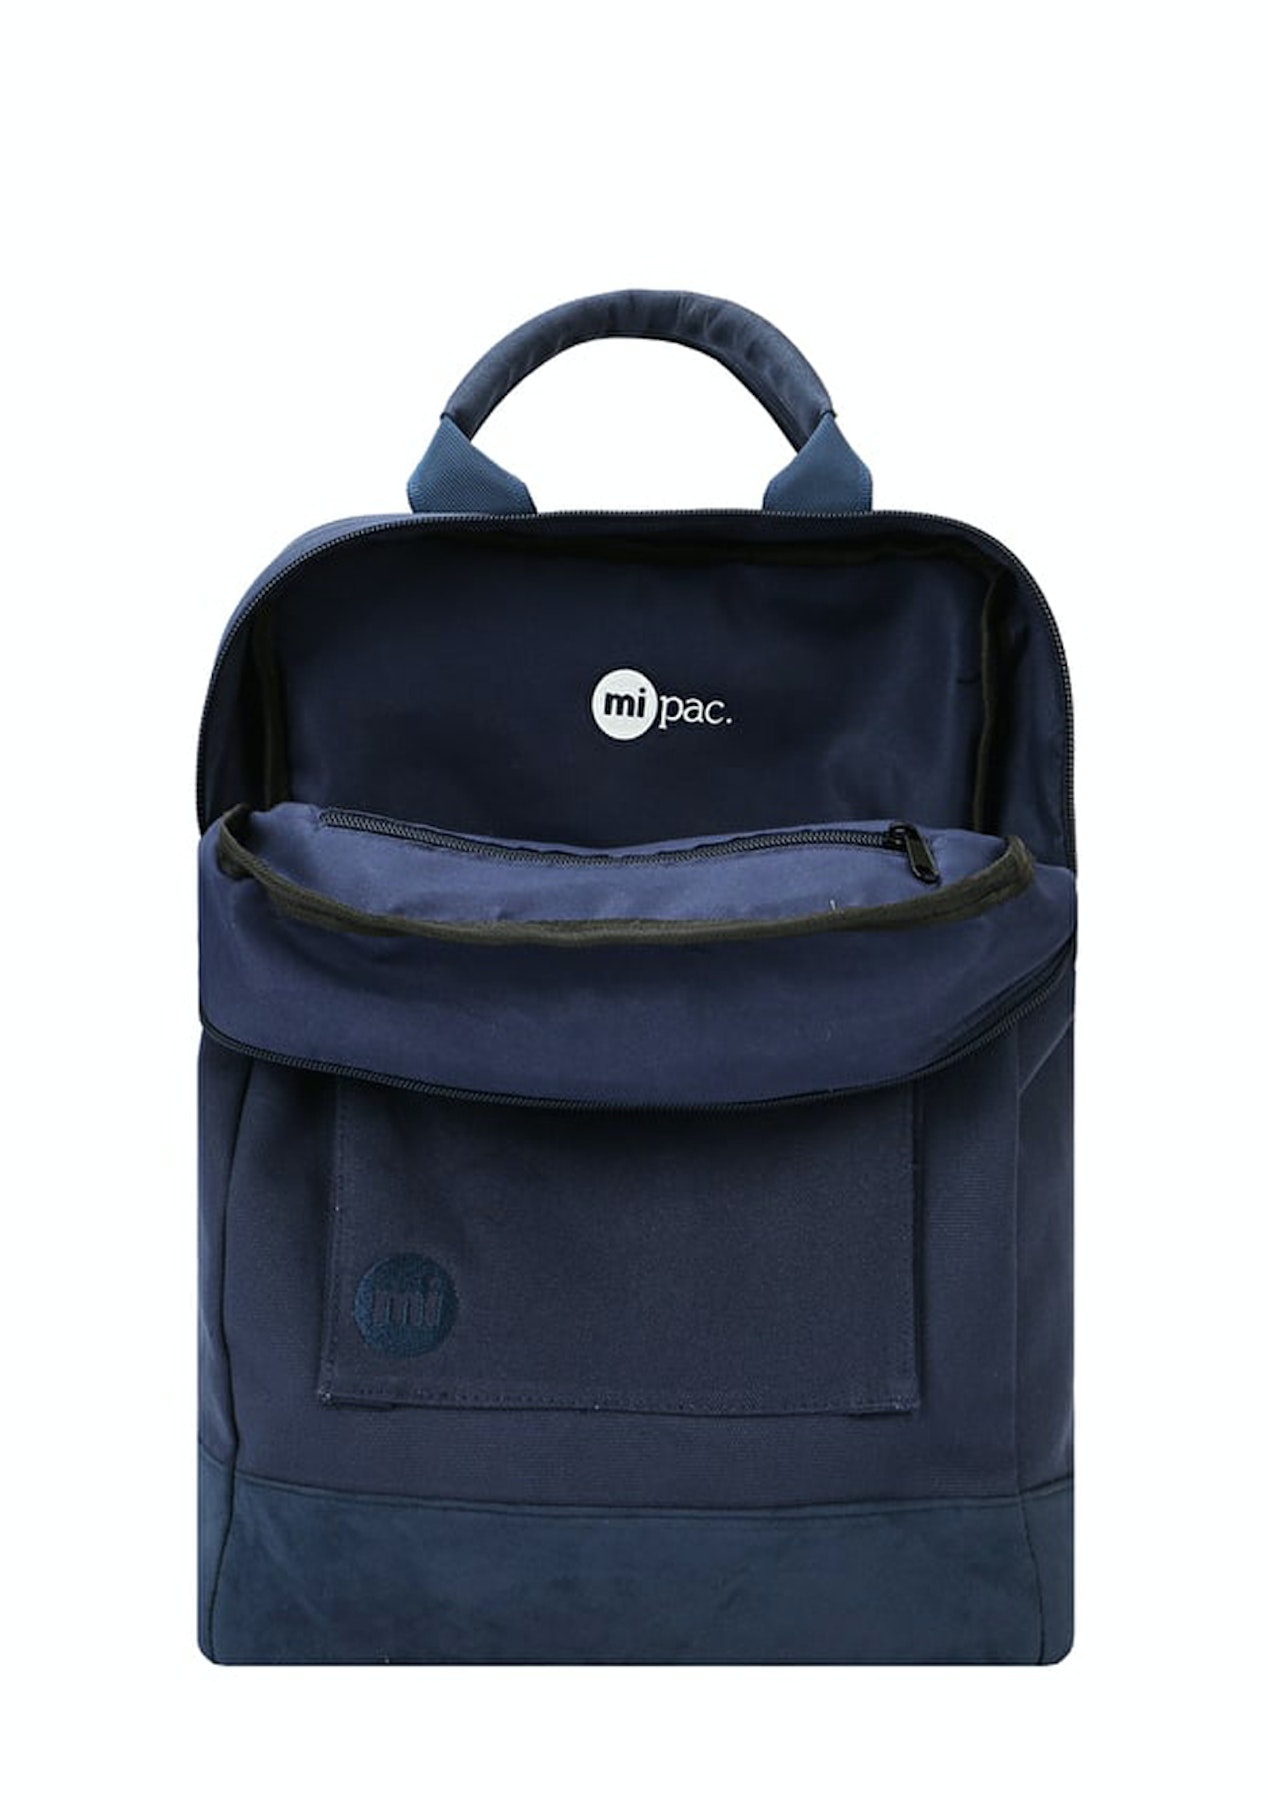 1441e416e Mi Pac - Tote Backpack - Navy - Back to School - Lunch boxes, bottles, Bags  & more - Onceit